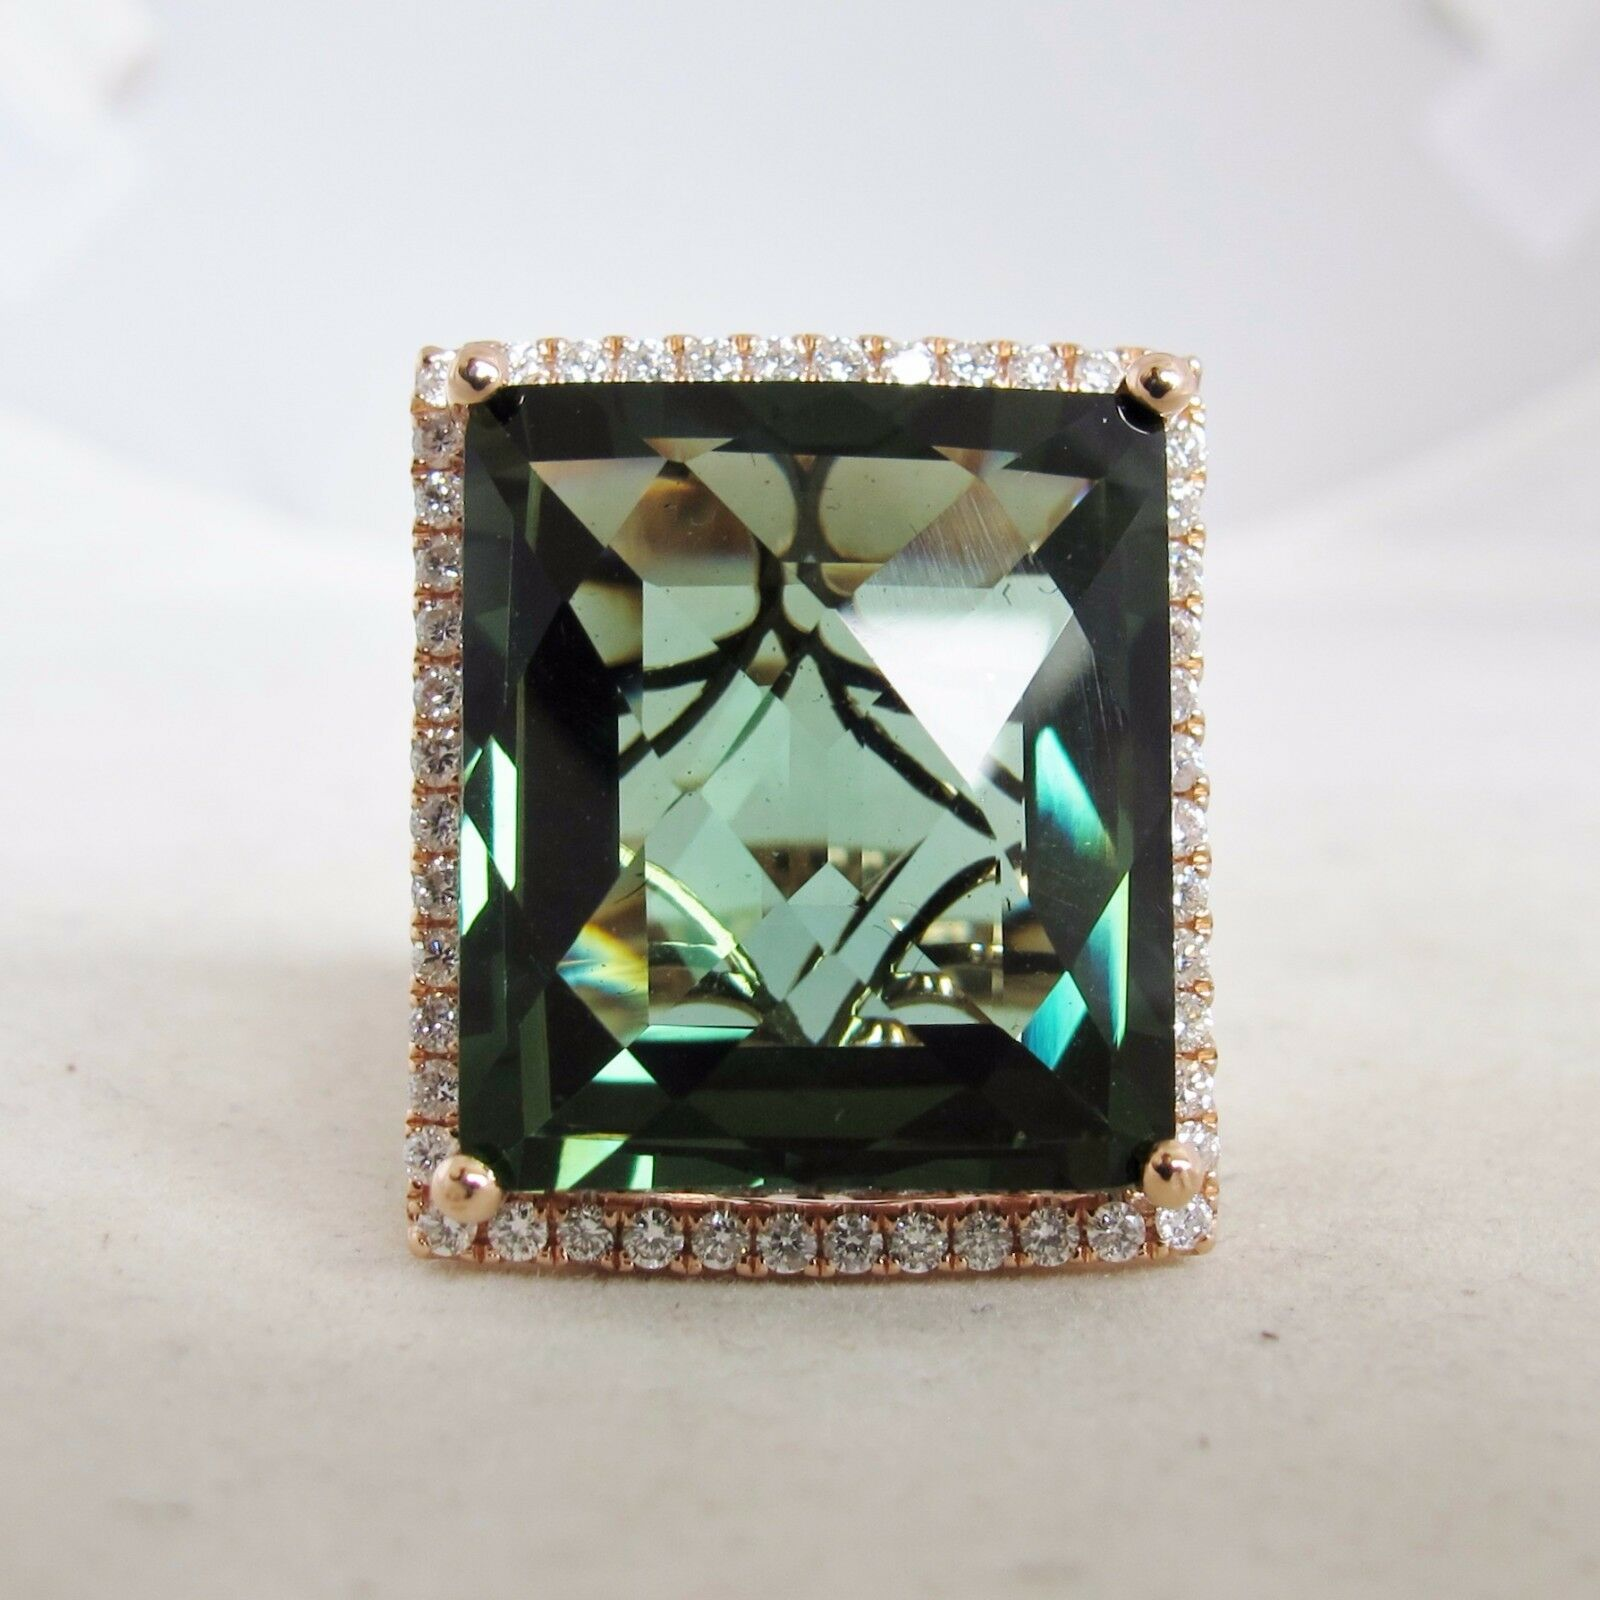 Big 14K pink gold Ring with 19.7mm Green Amethyst & Diamonds  (13.2g, size 6.5)